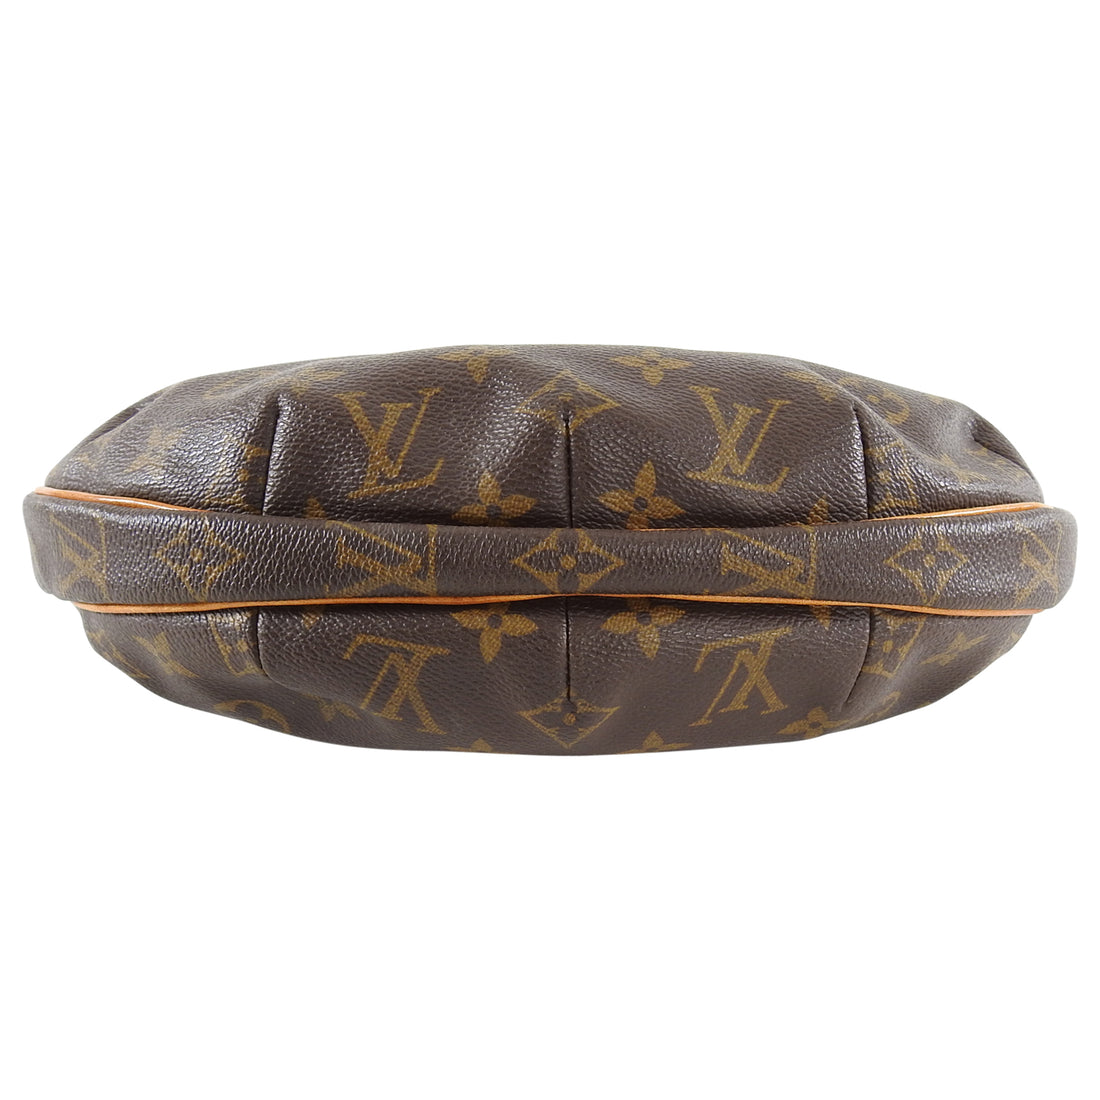 Louis Vuitton Monogram Croissant GM Shoulder Bag